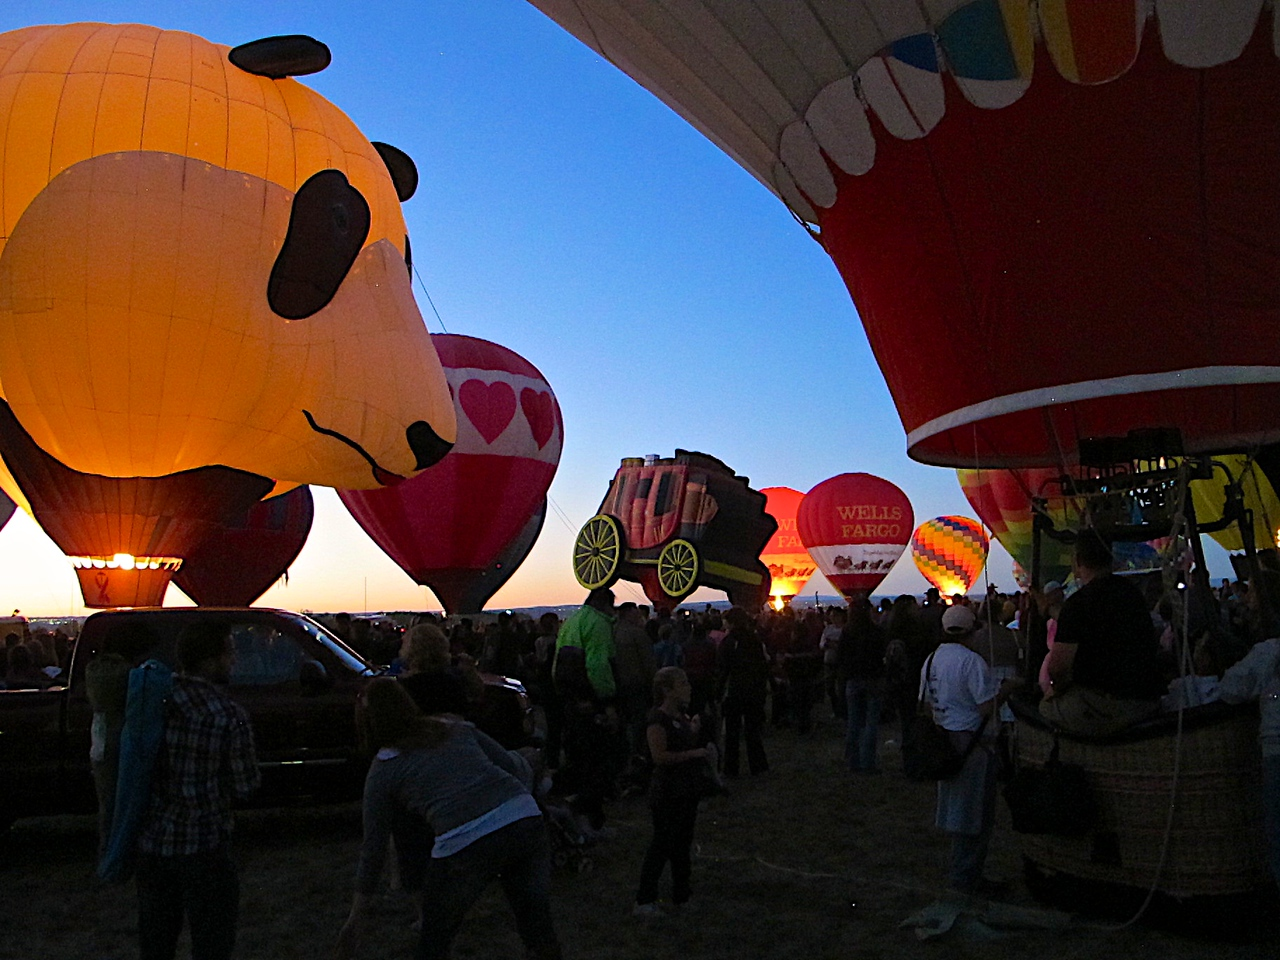 Balloon Fiesta launched its Balloon Glow the world's biggest in 1987. Fiesta Glow all burns when all the balloons fire their burners and light up at the same time are perhaps the most spectacular single moment in all of Balloon Fiesta. The Balloon Glows followed by New Mexico's most spectacular fireworks displays - are now among Balloon Fiesta's most popular events.